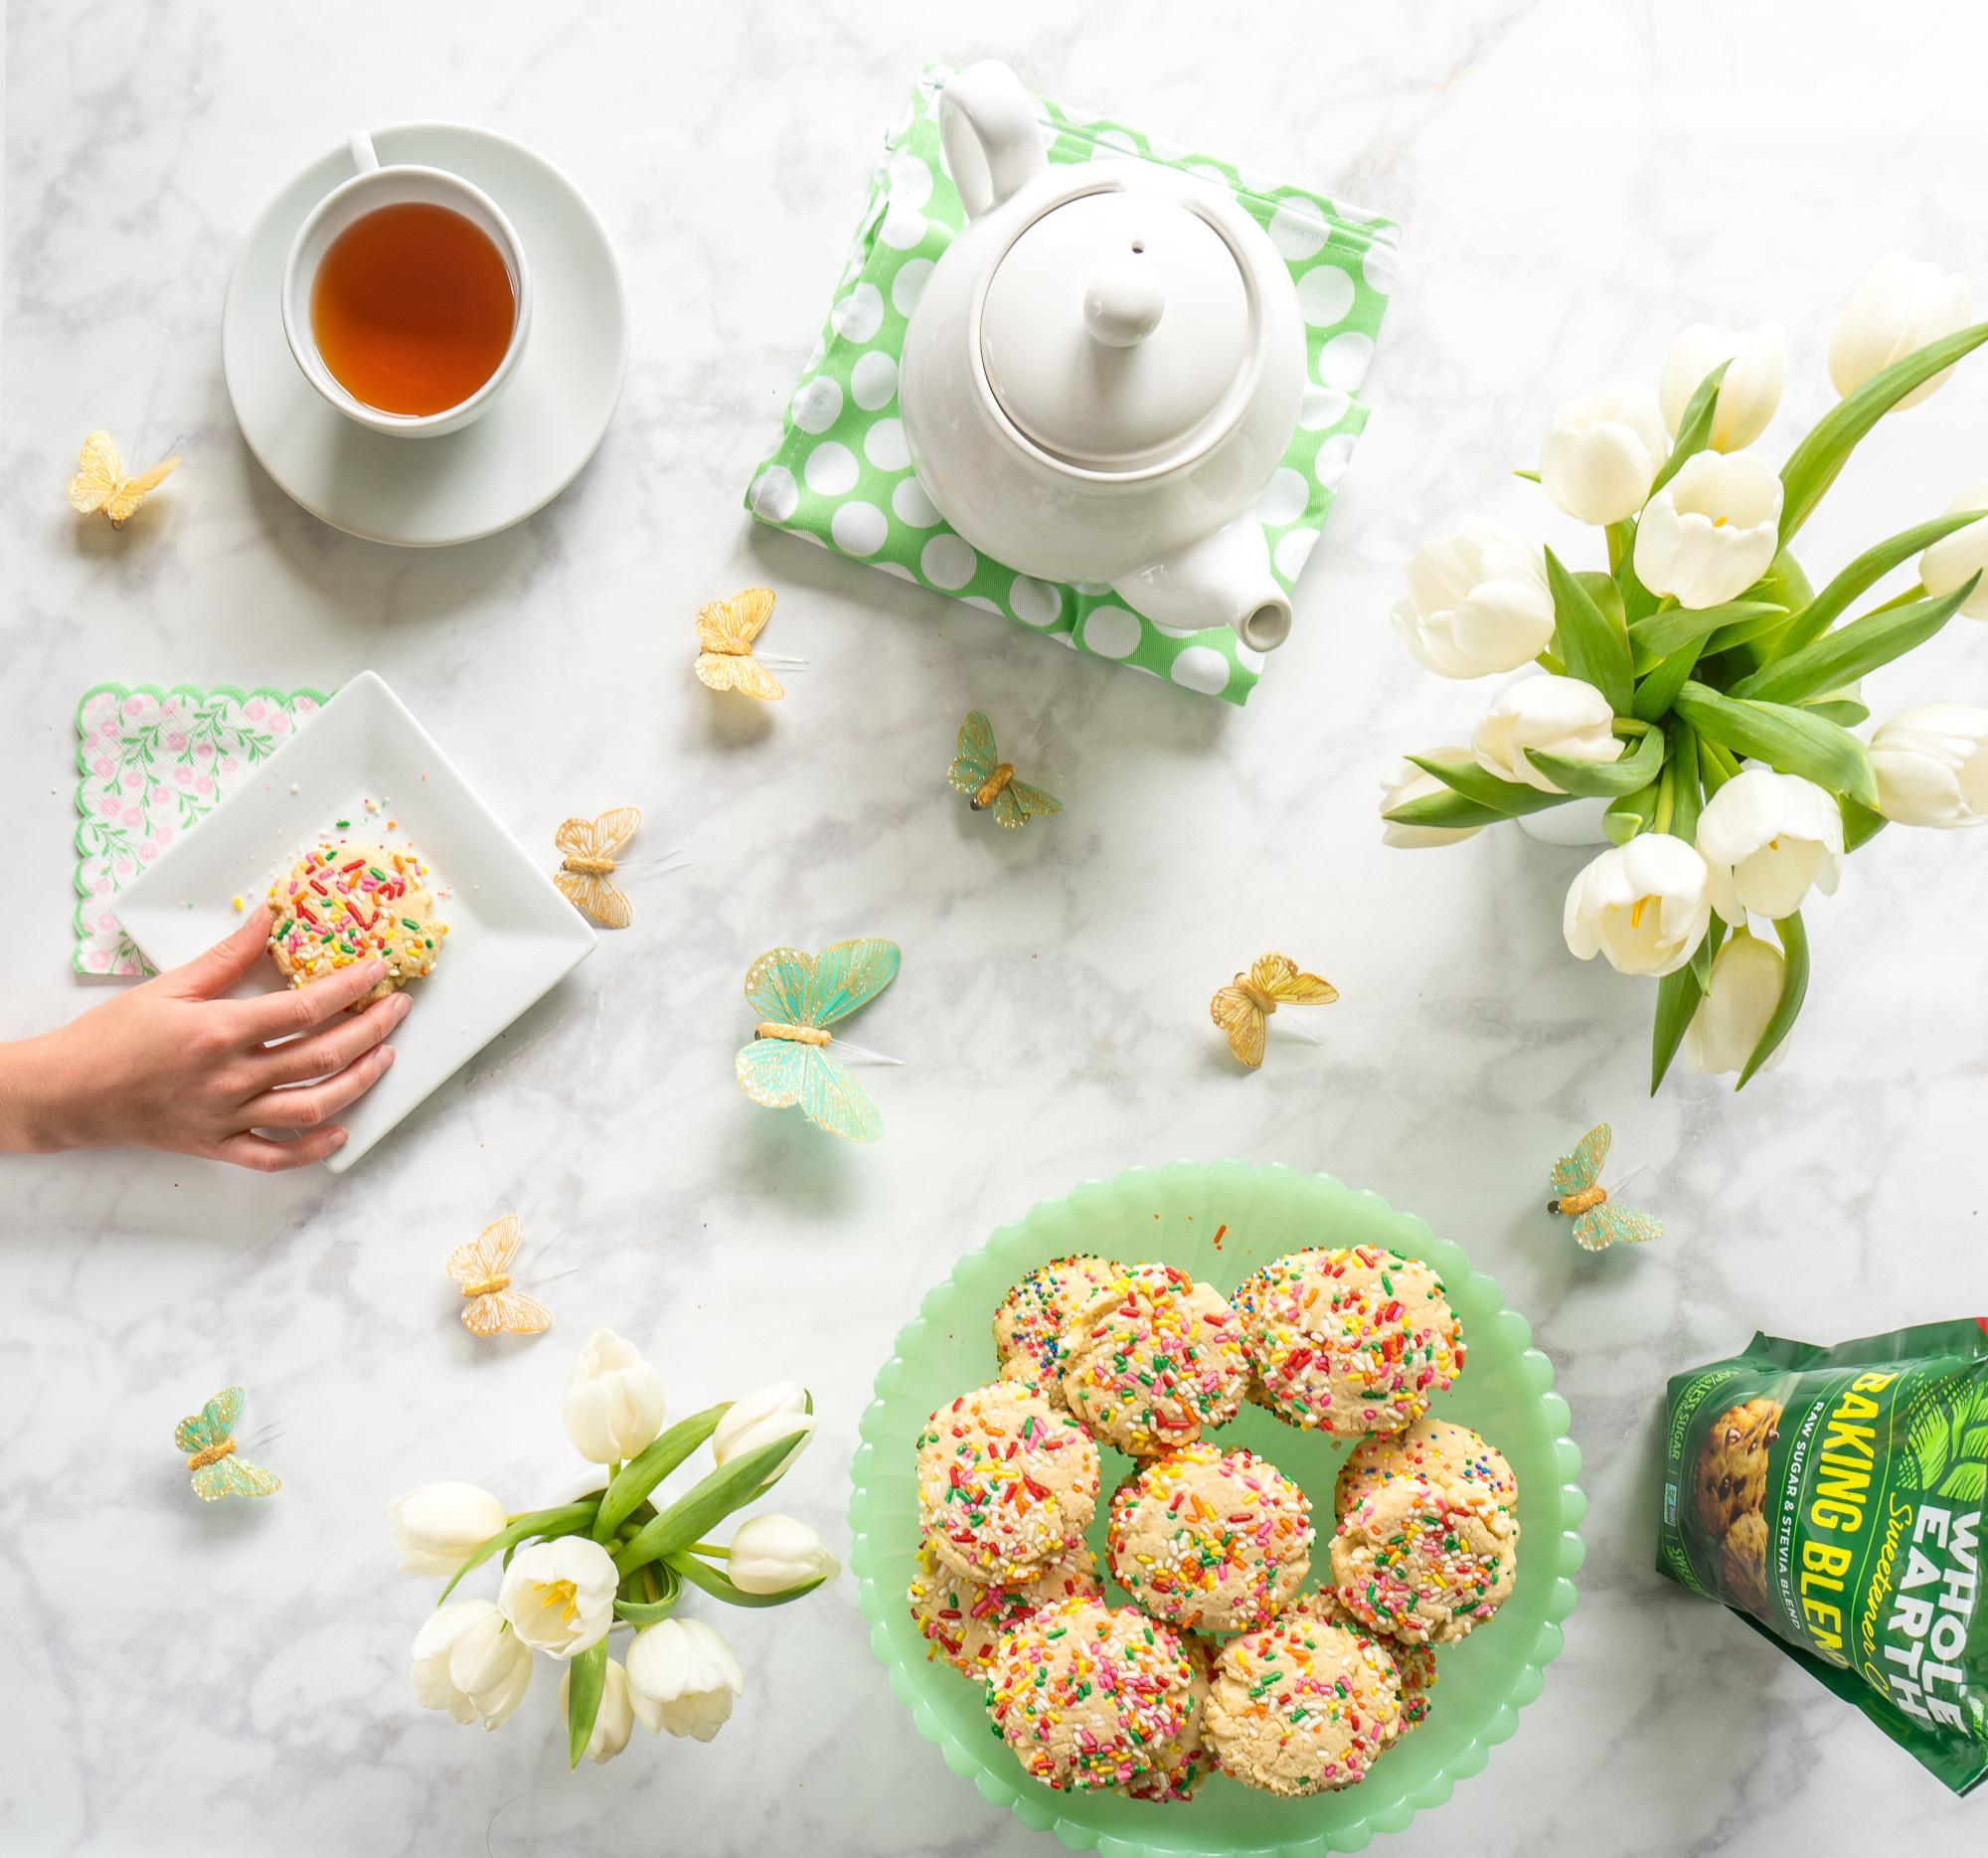 A recipe for lower calorie sugar cookies that are perfect for spring entertaining.